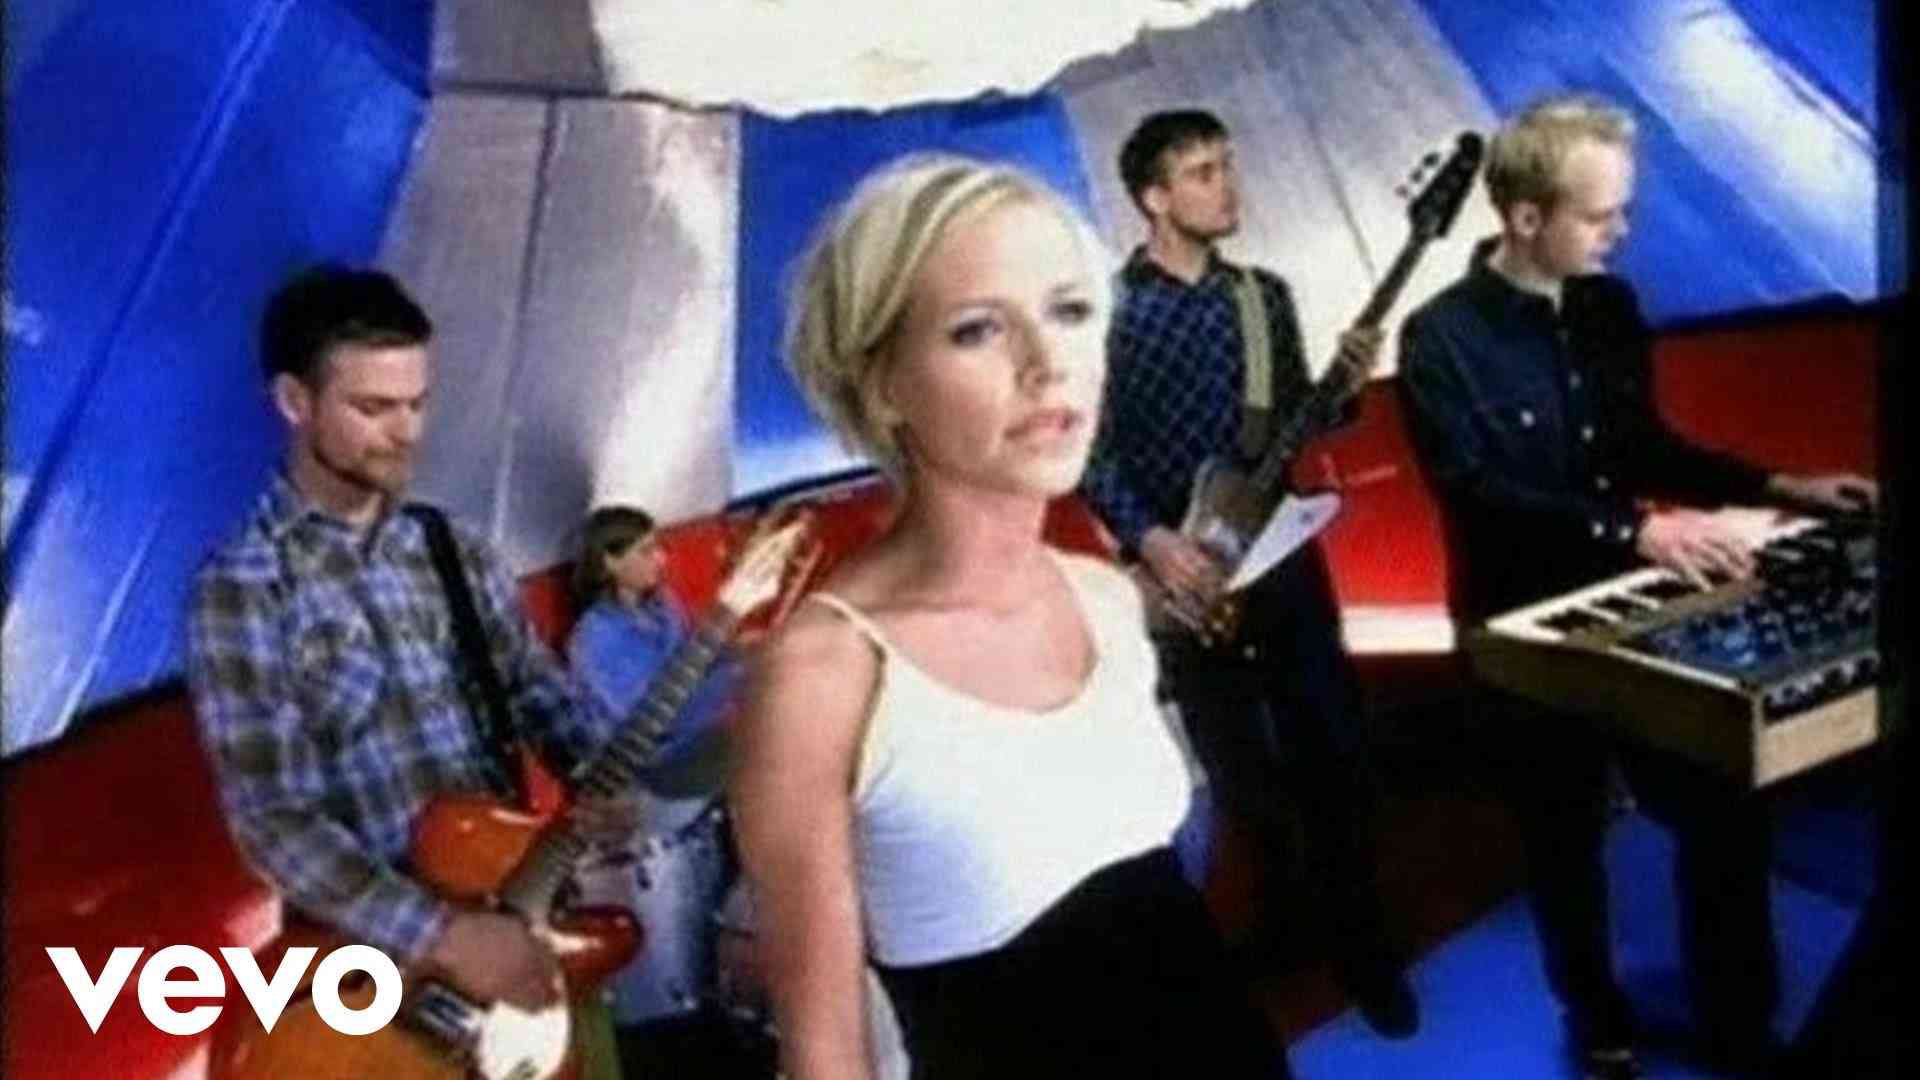 The Cardigans - Lovefool - YouTube